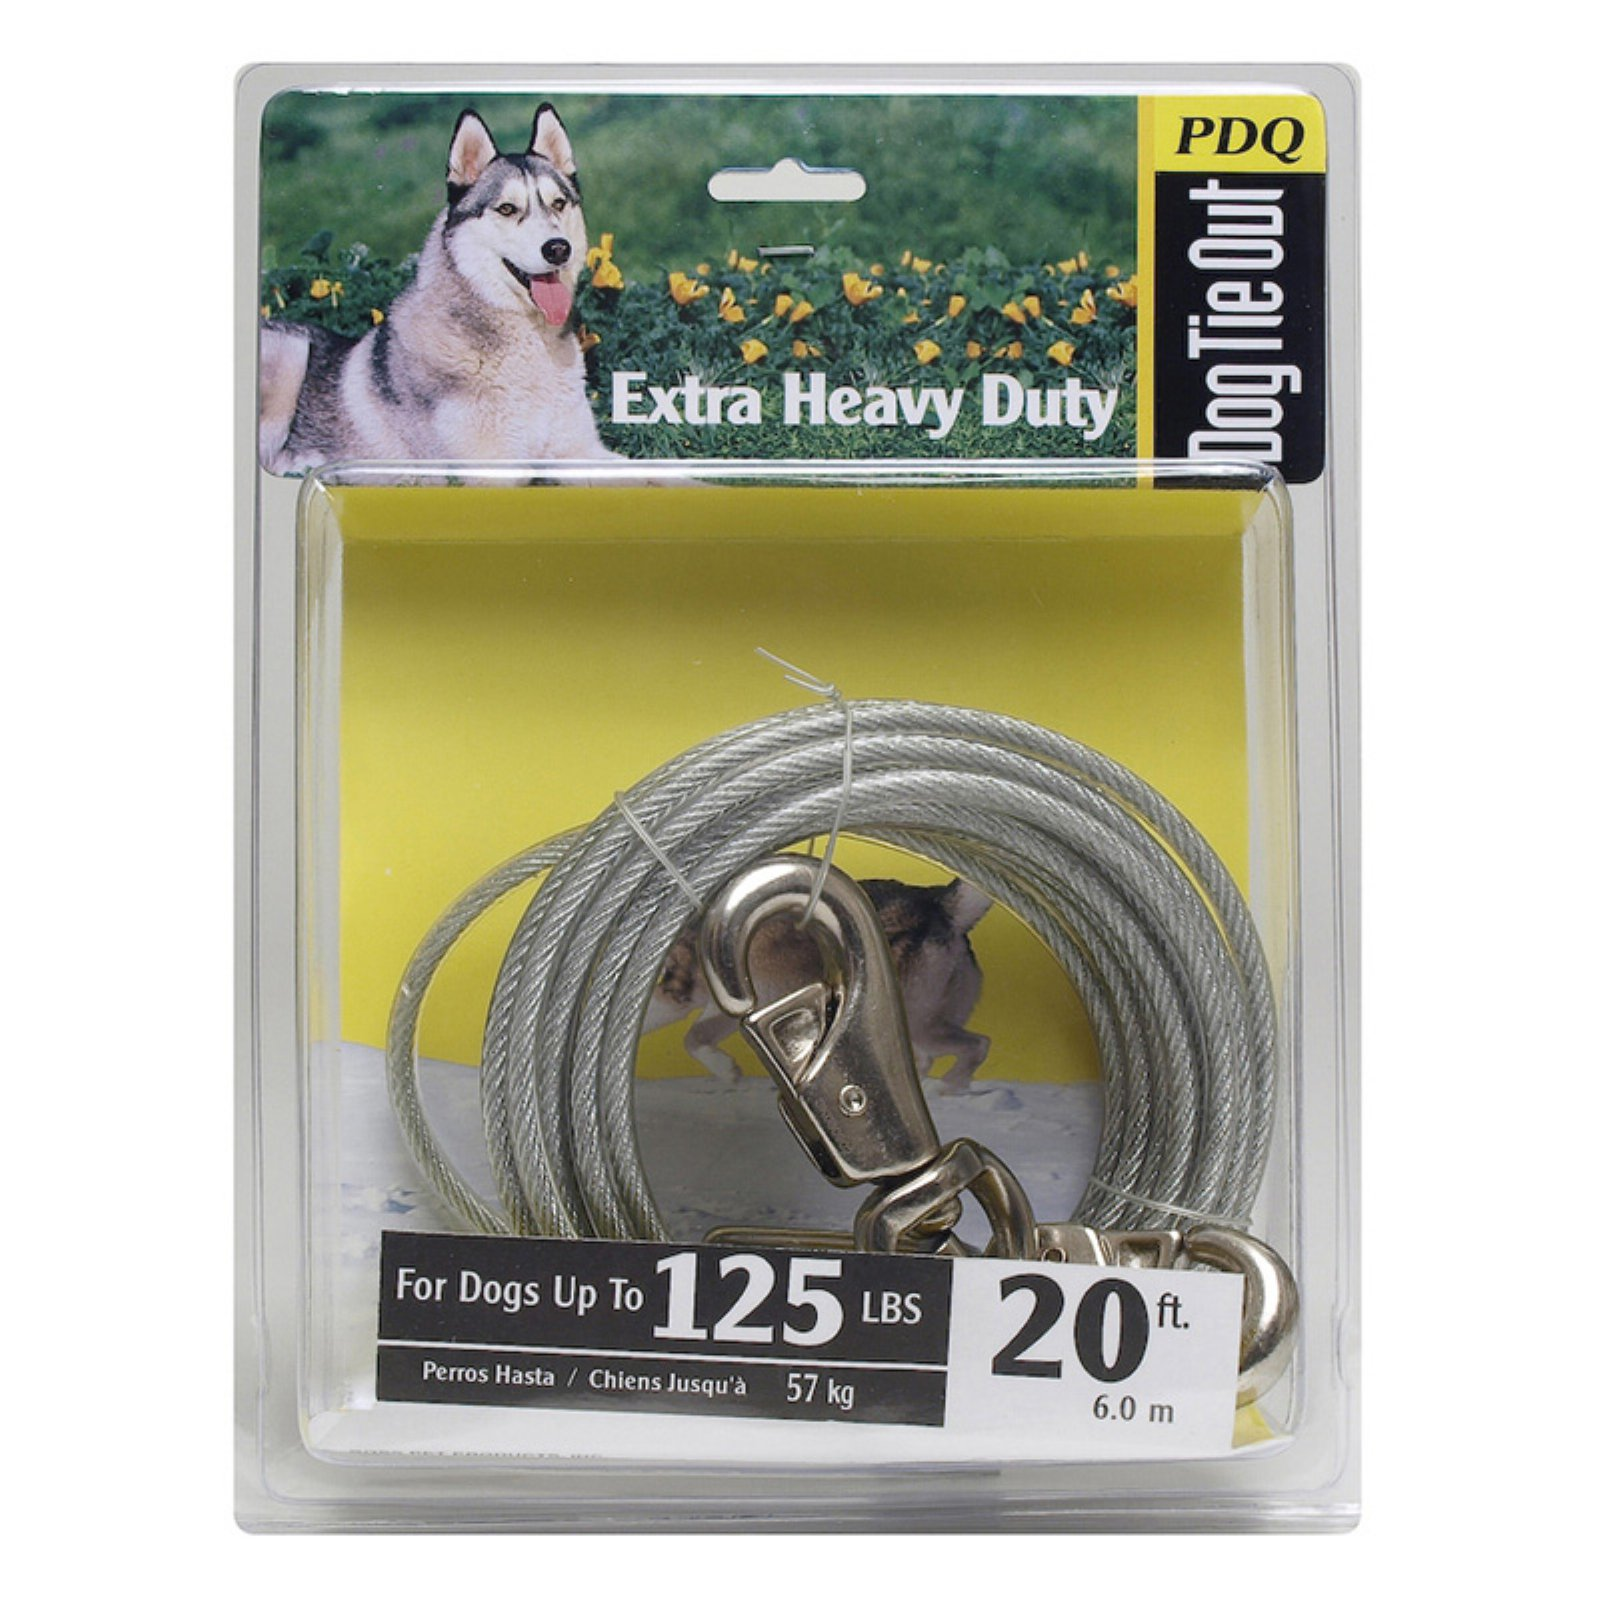 Boss Pet Q5720 SPG 99 20' Extra Large Dog PDQ Tie-Out with Spring